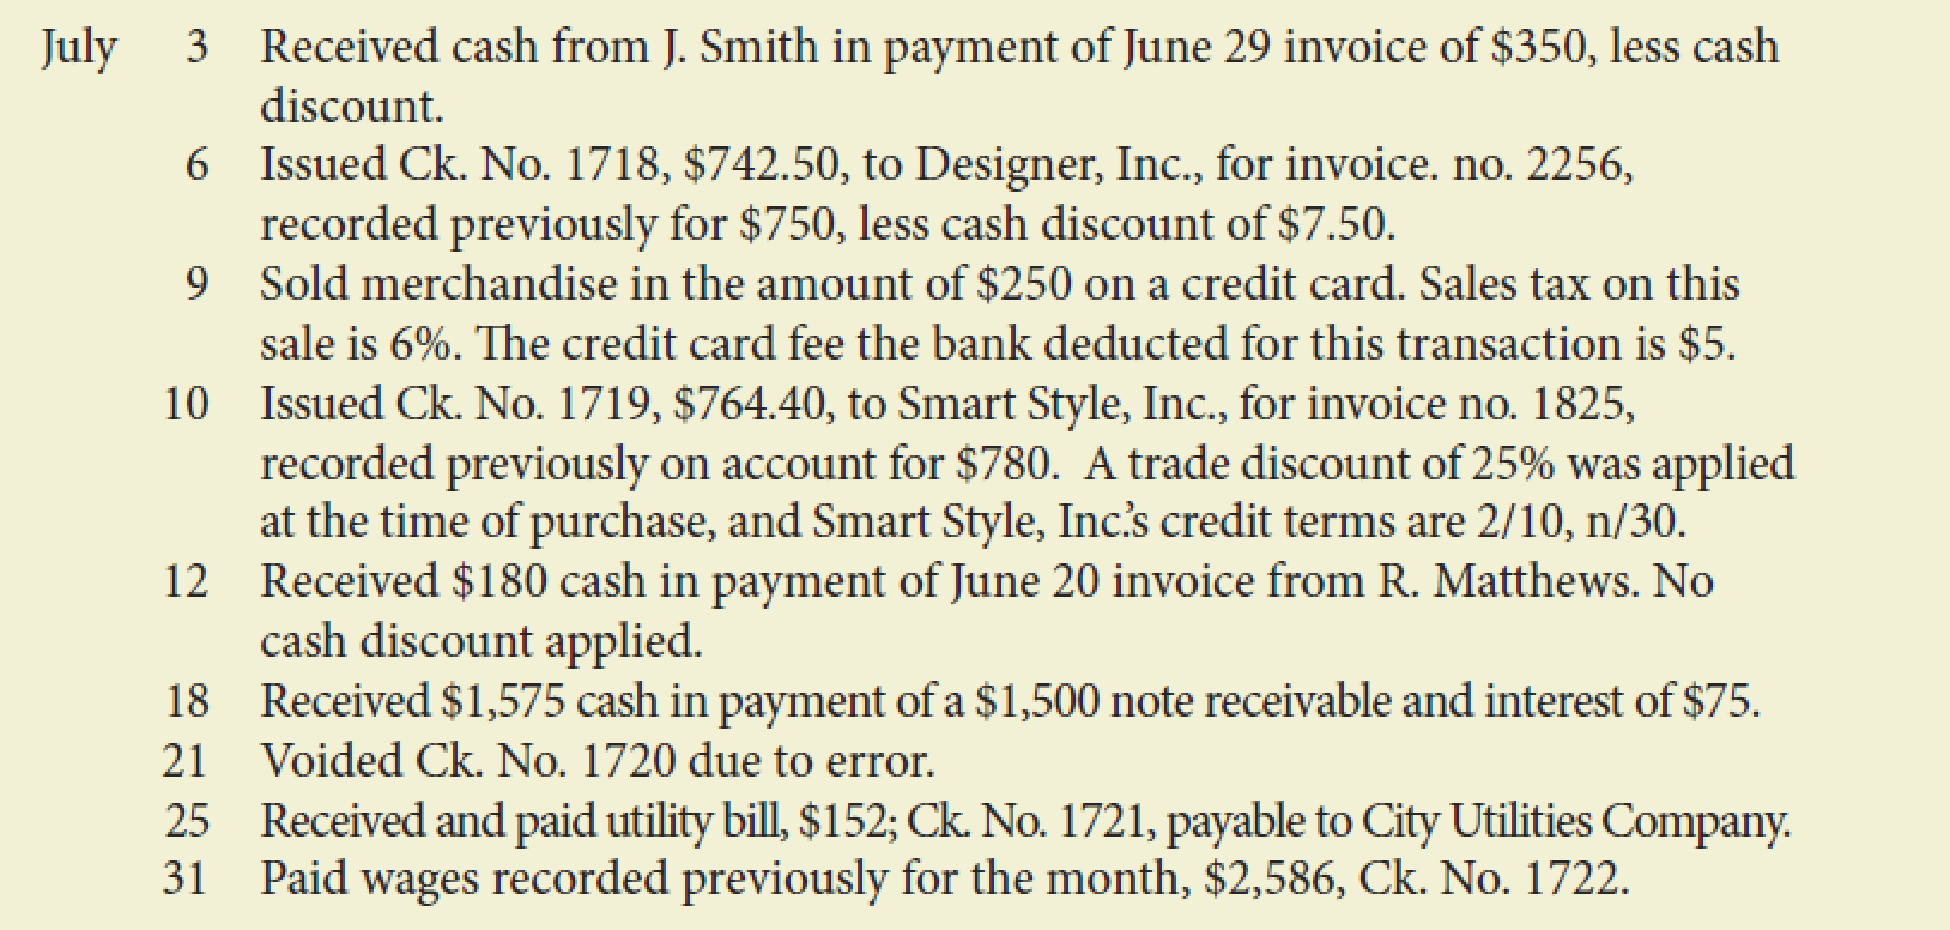 Chapter 10, Problem 5PA, The following transactions were completed by Nelsons Boutique, a retailer, during July. Terms on